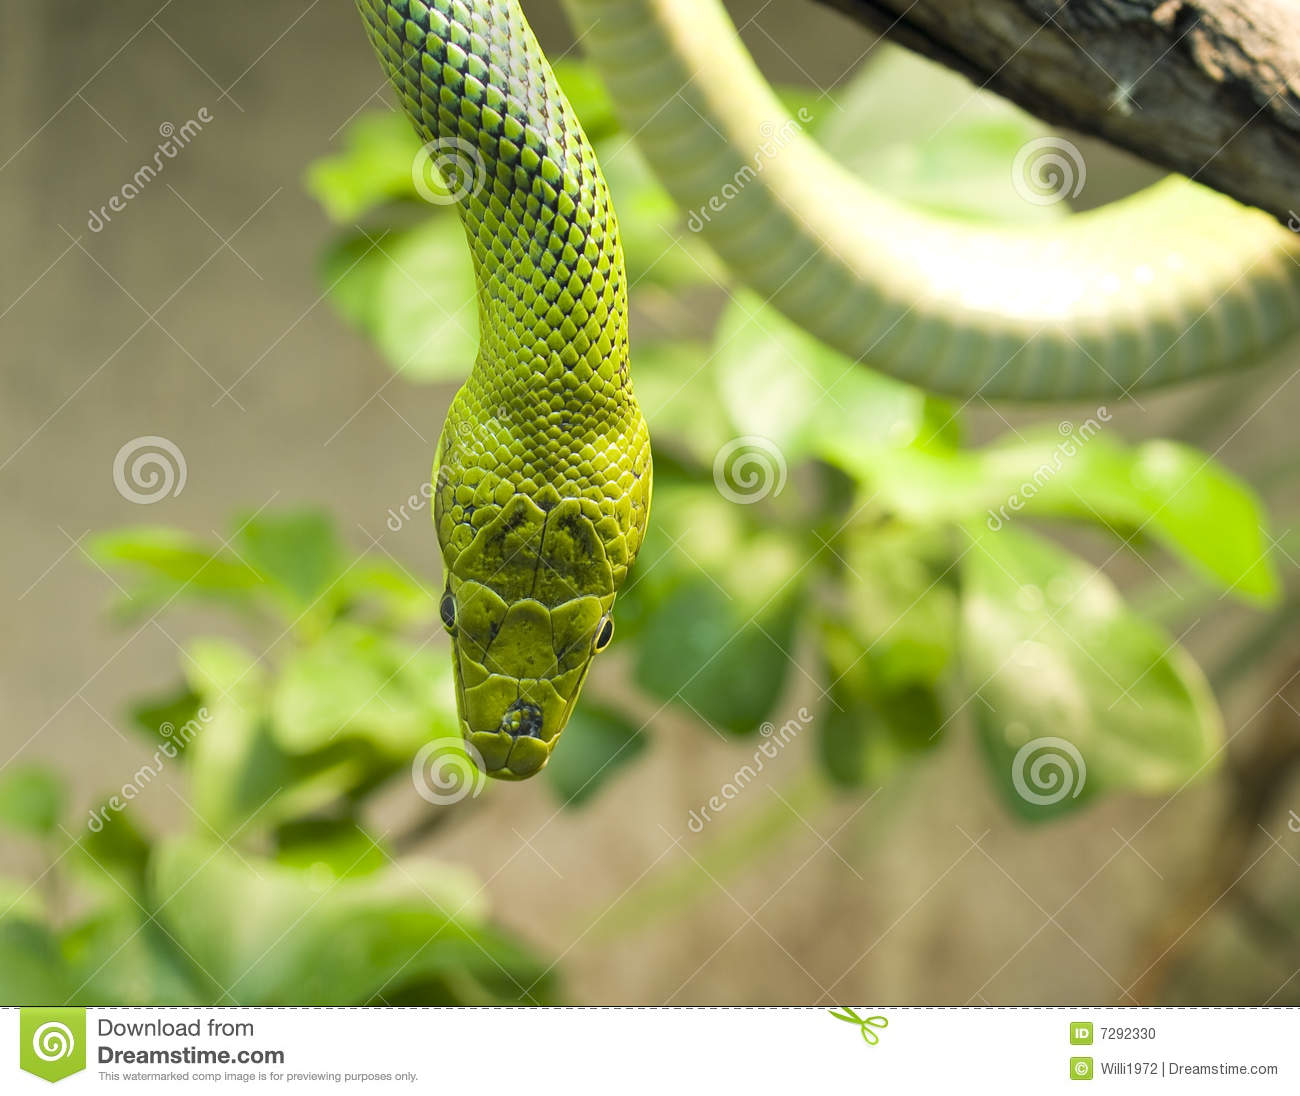 green snakes branches snake - photo #19